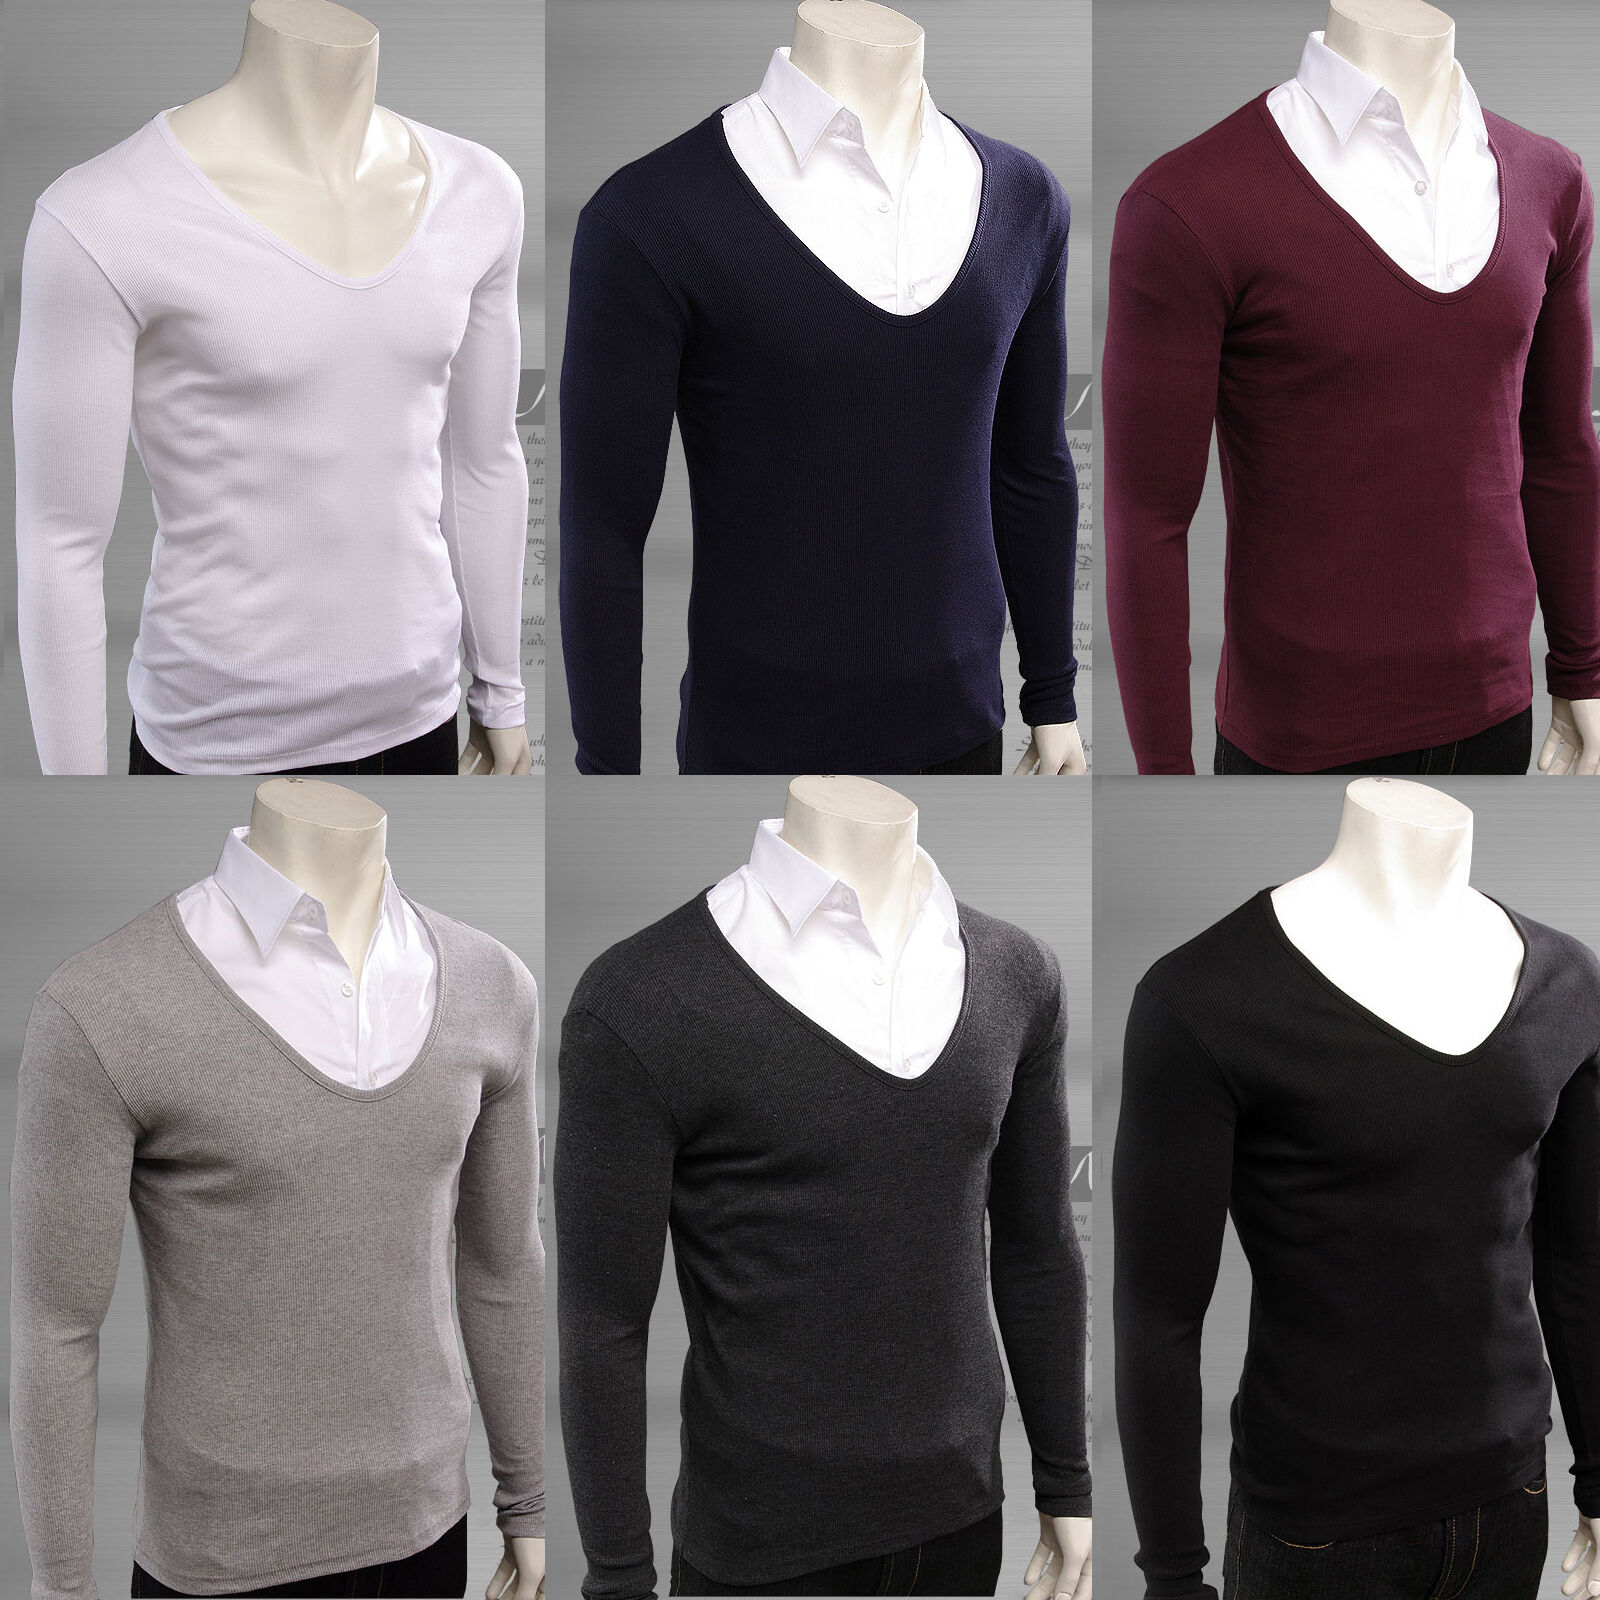 Men's v neck sweaters stretch t-shirts cotton long sleeve jumper casual top tee